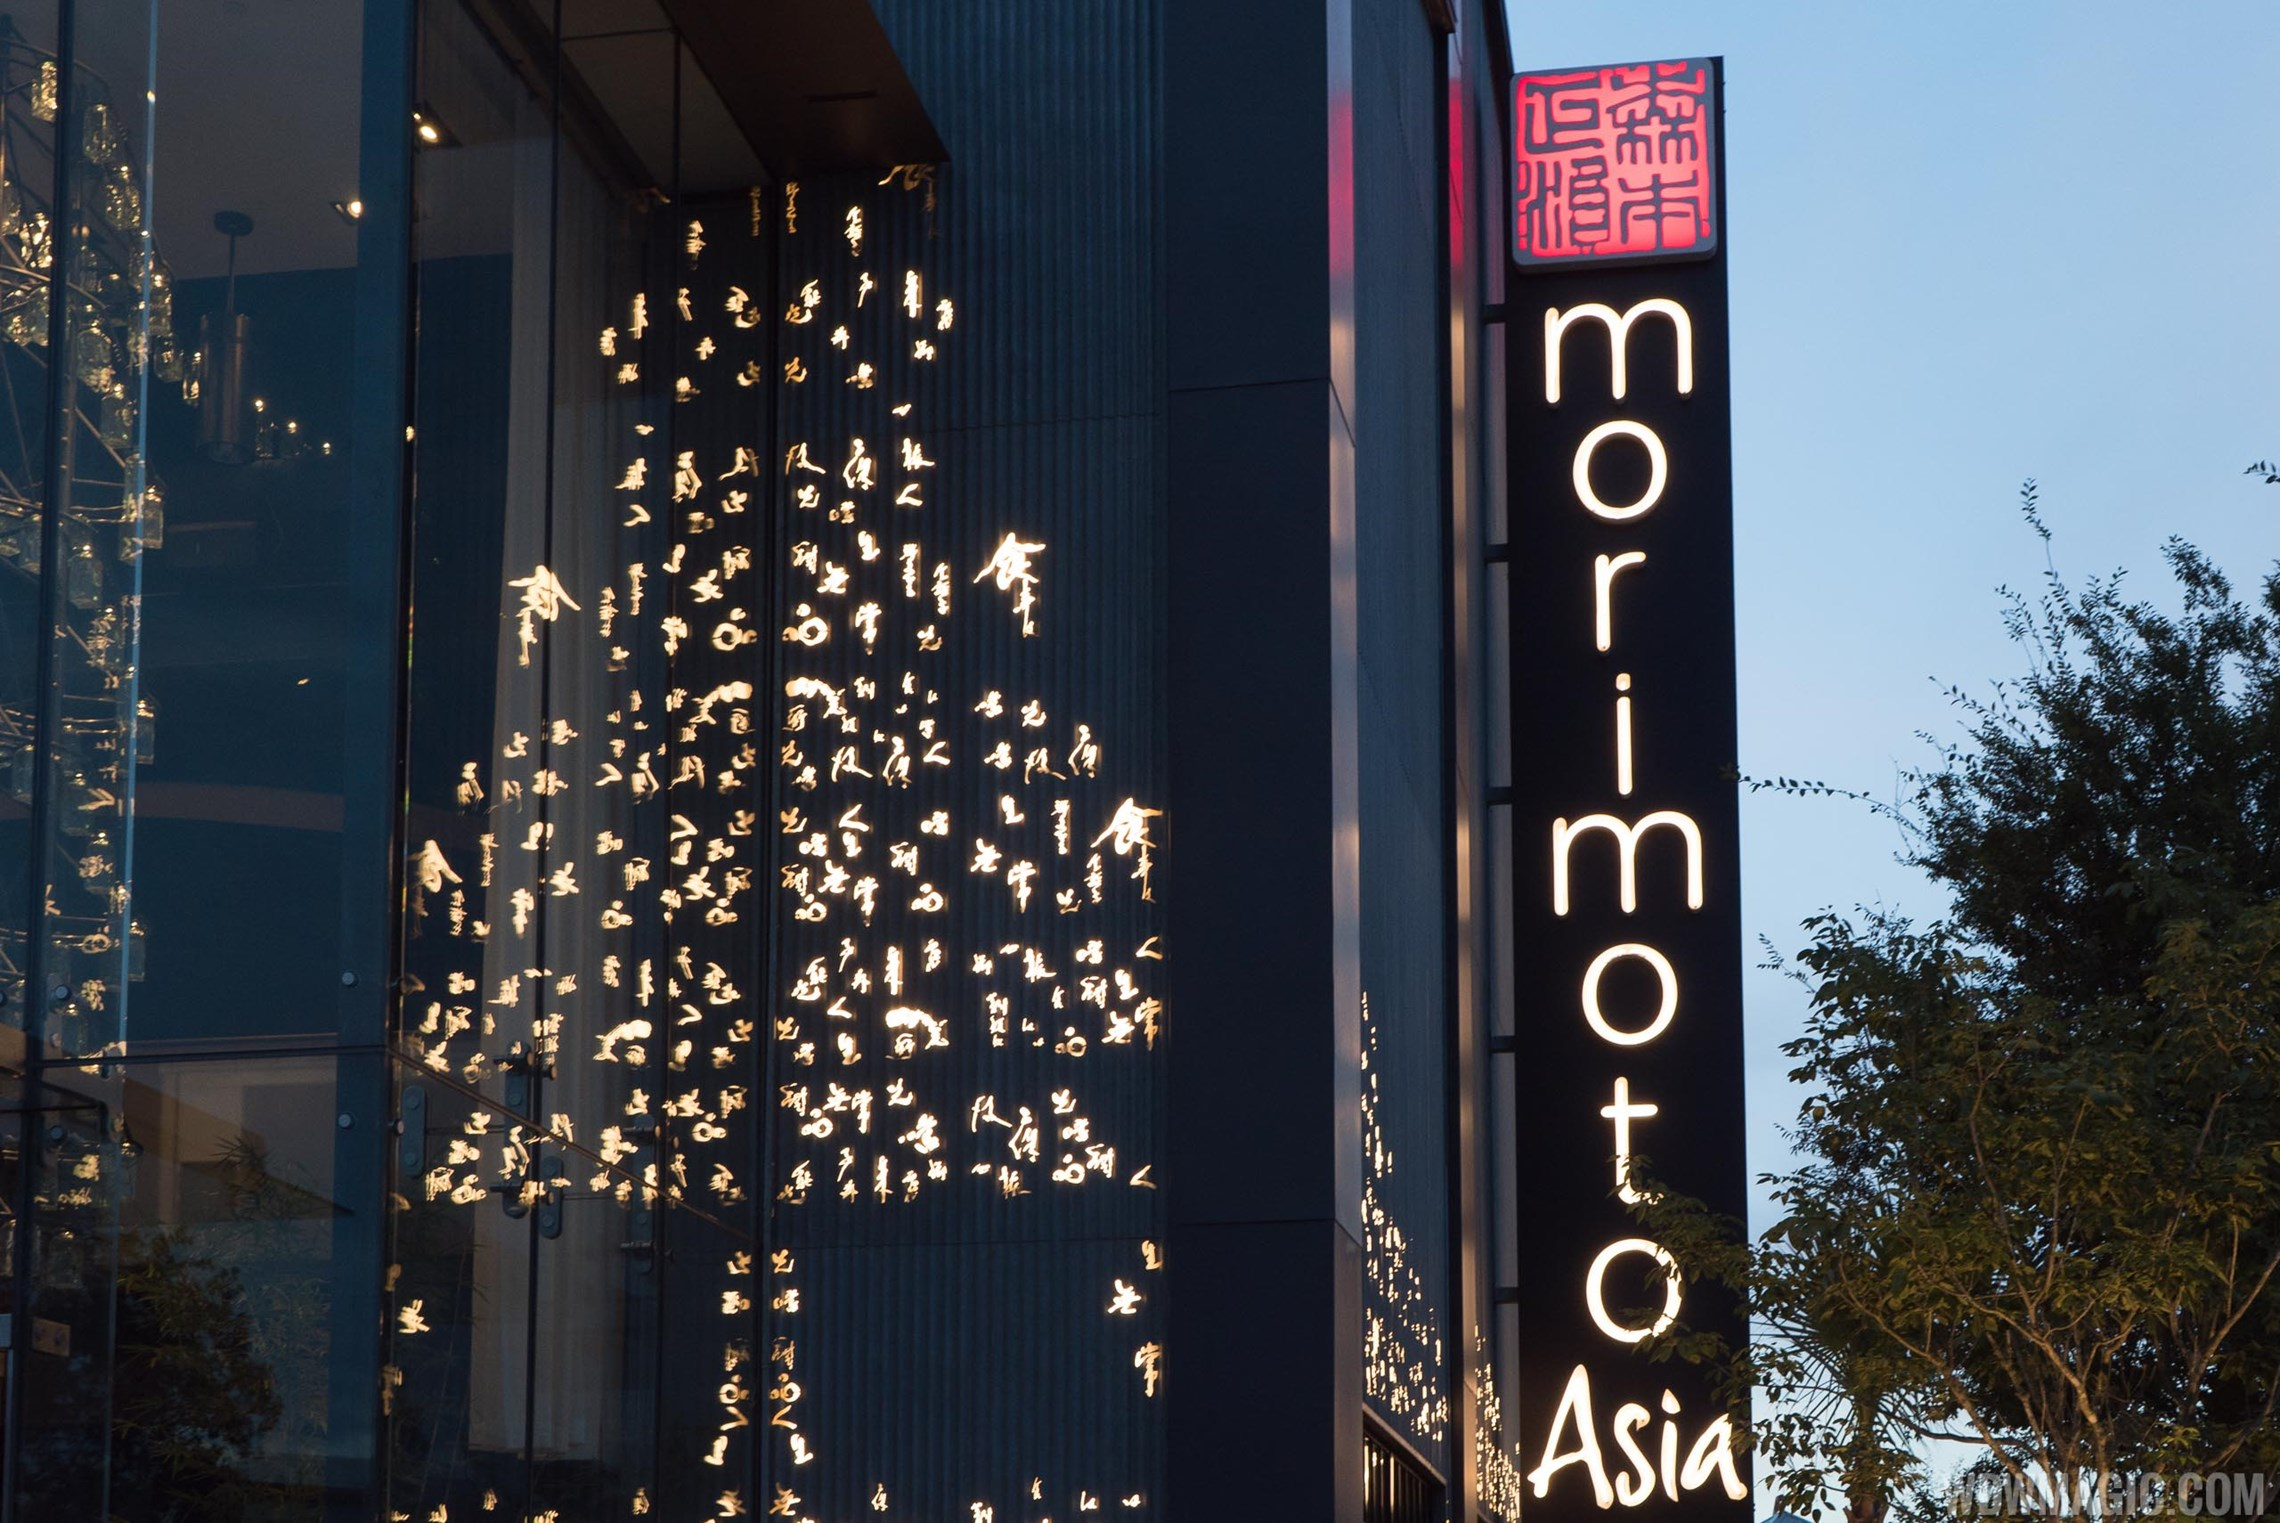 Bubbles & Brunch special dining event coming to Morimoto Asia at Disney Springs